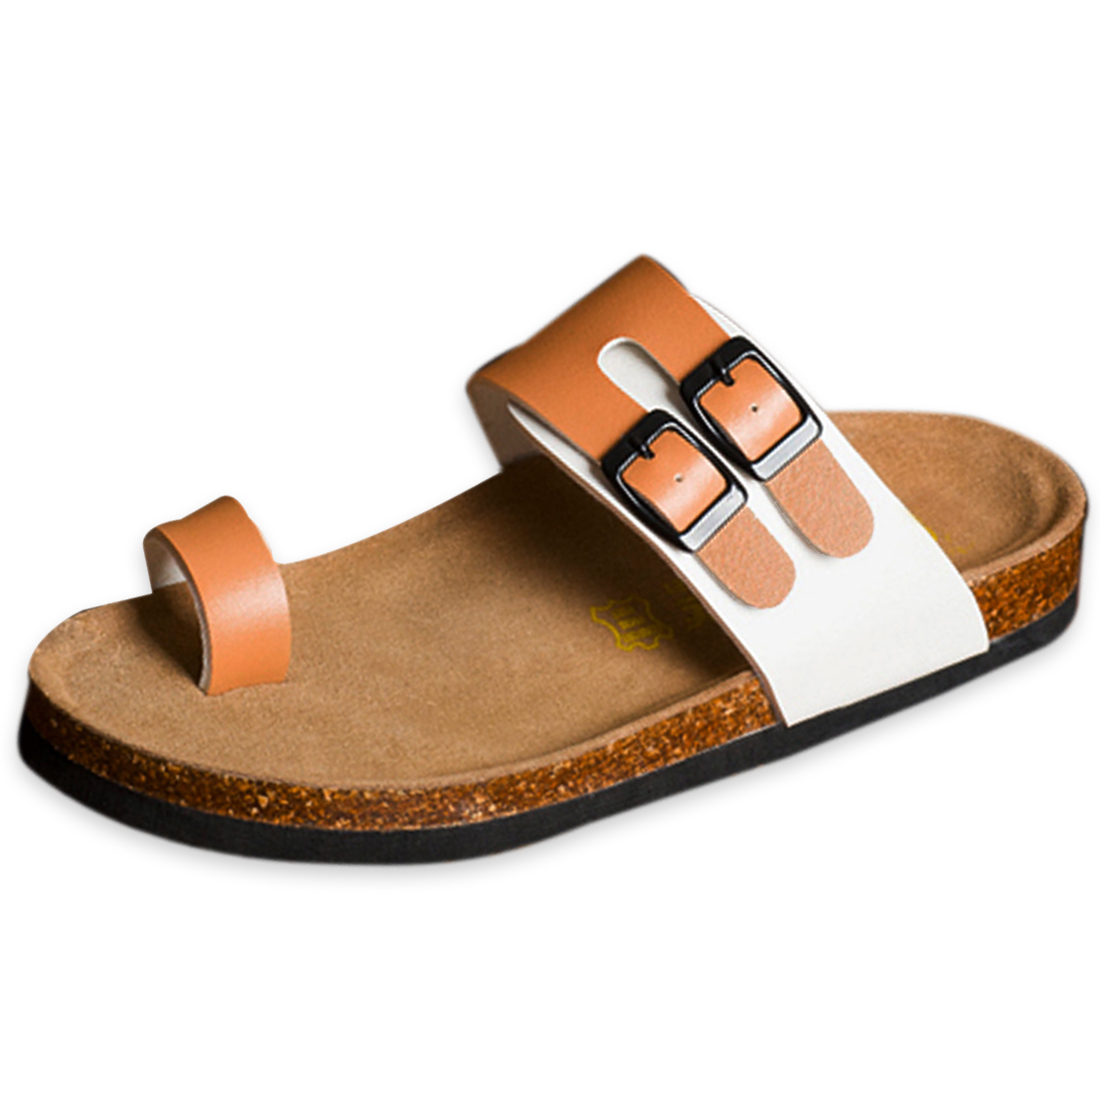 White Coffee 10 US Size Metal Buckle Strap Slide Casual Sandal for Men